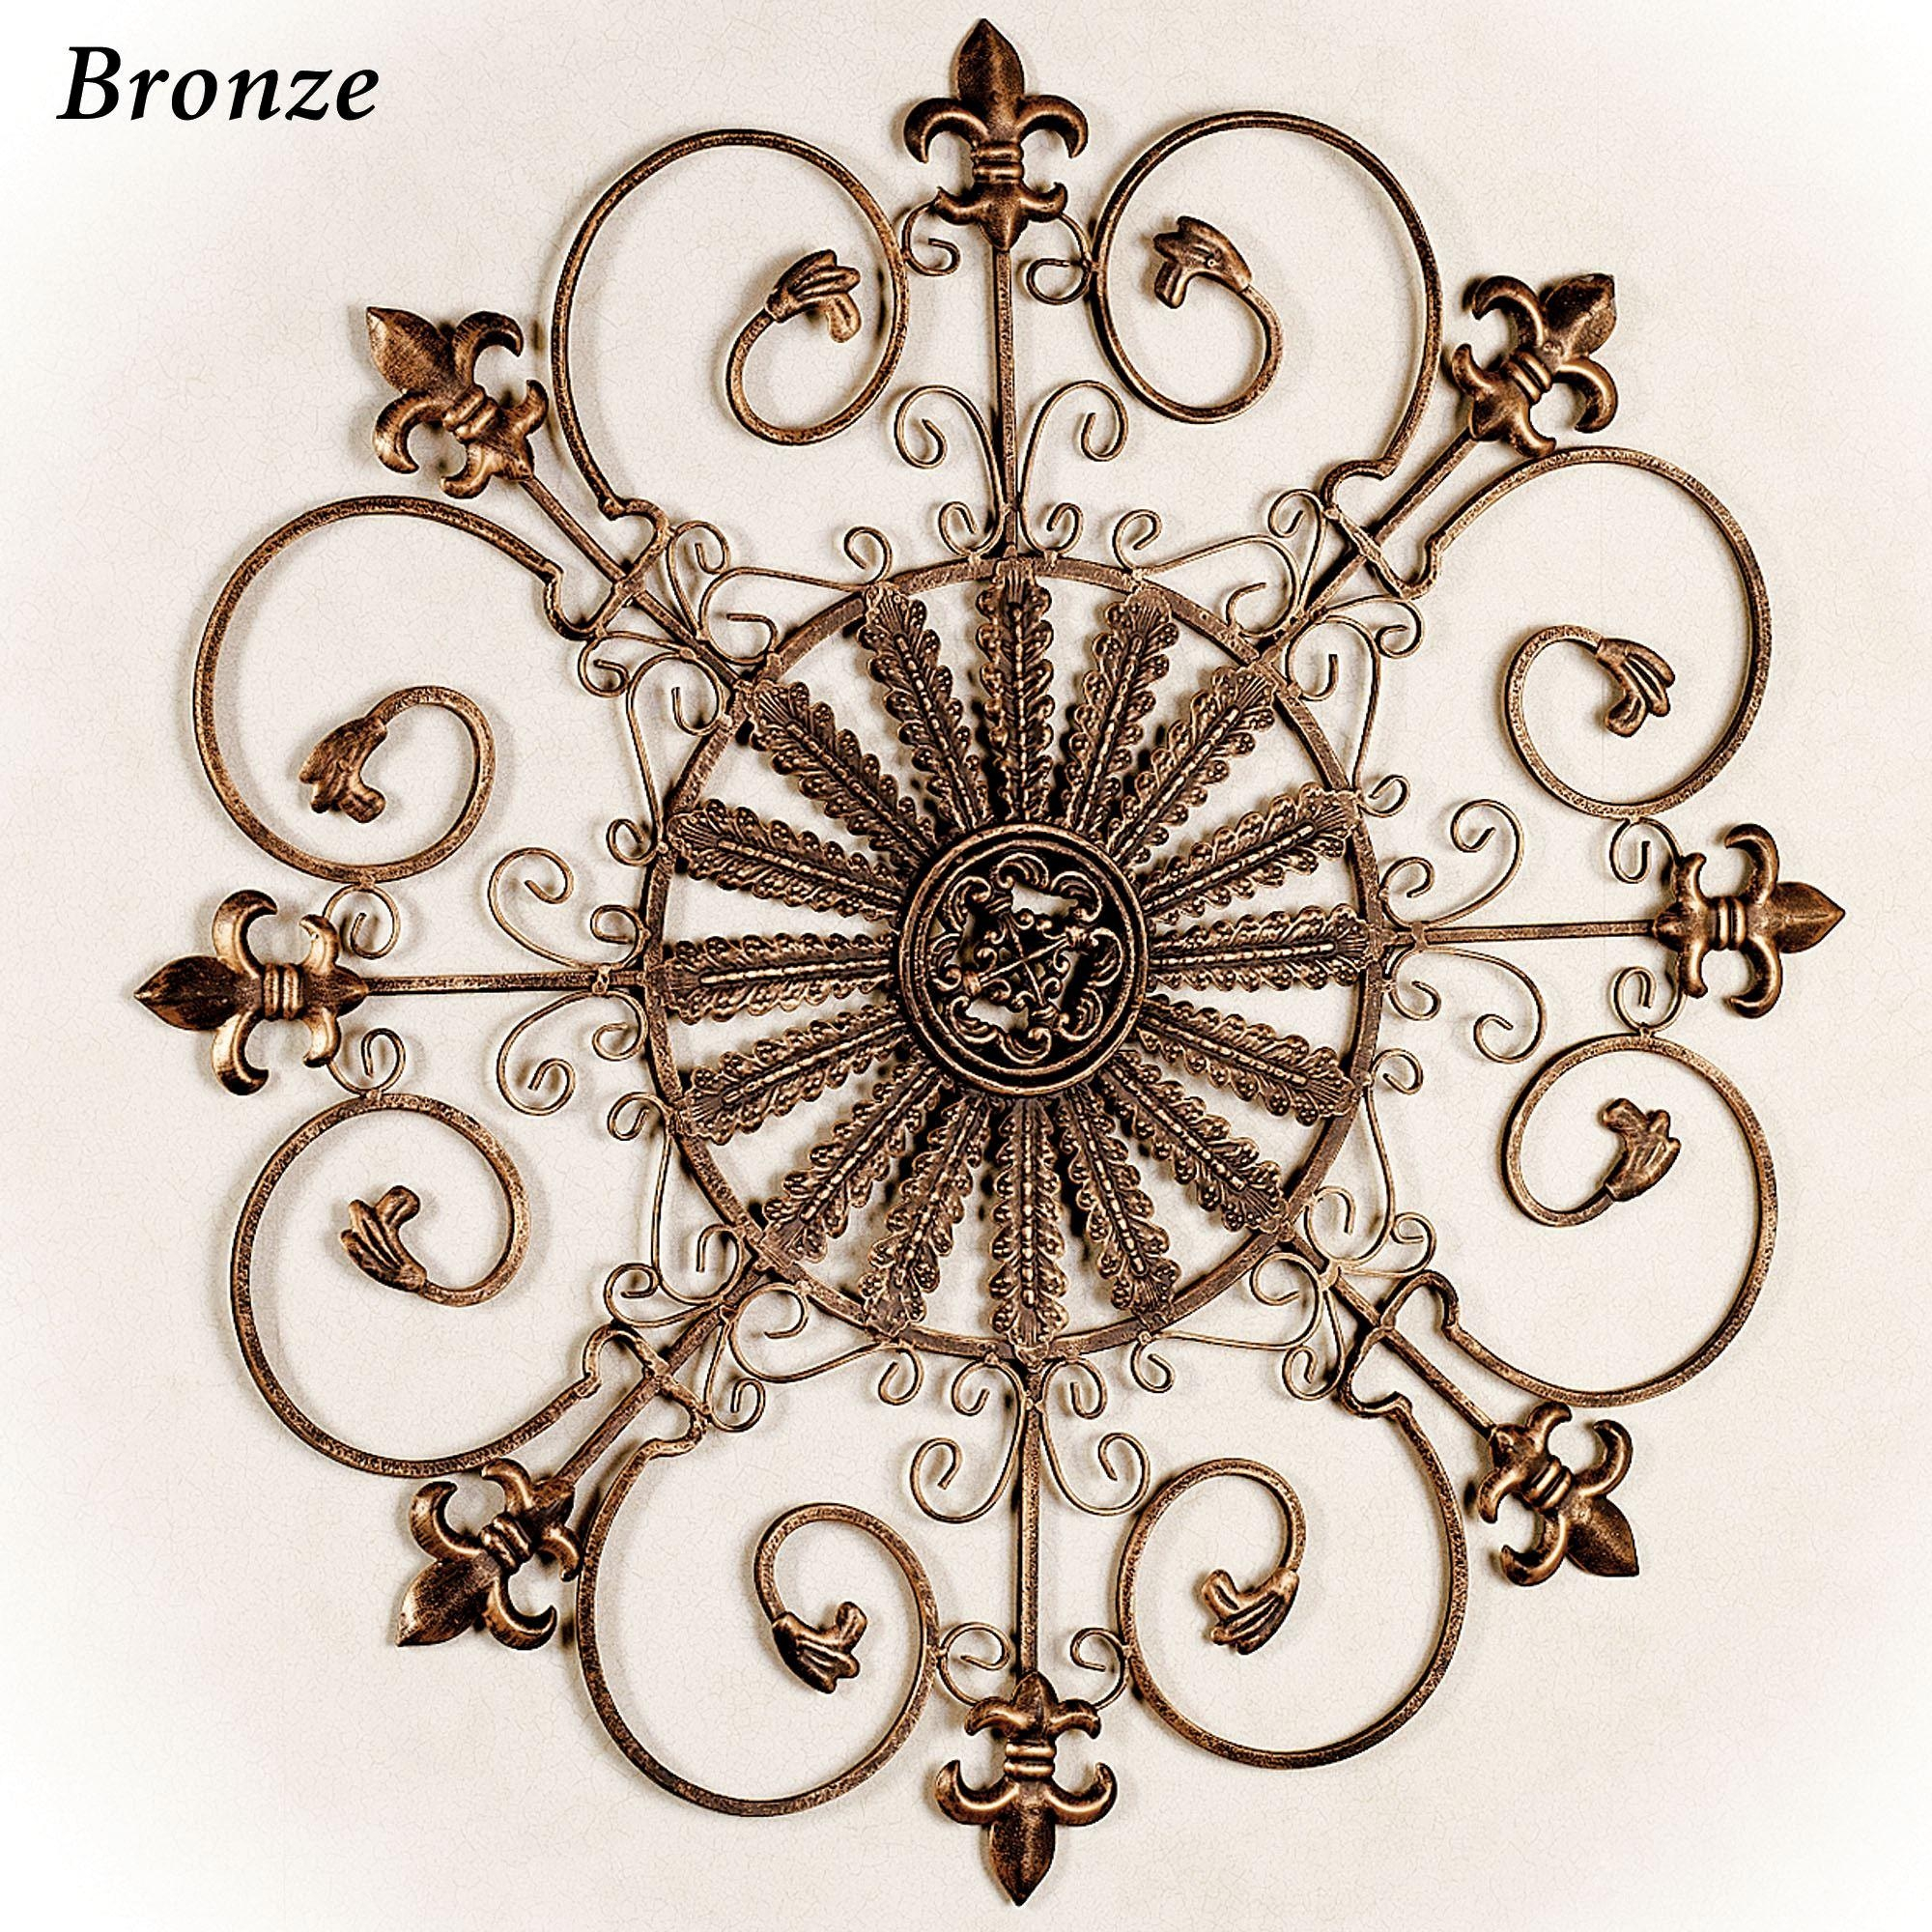 Fleur De Lis Metal Wall Grille With Fleur De Lis Metal Wall Art (Image 3 of 20)